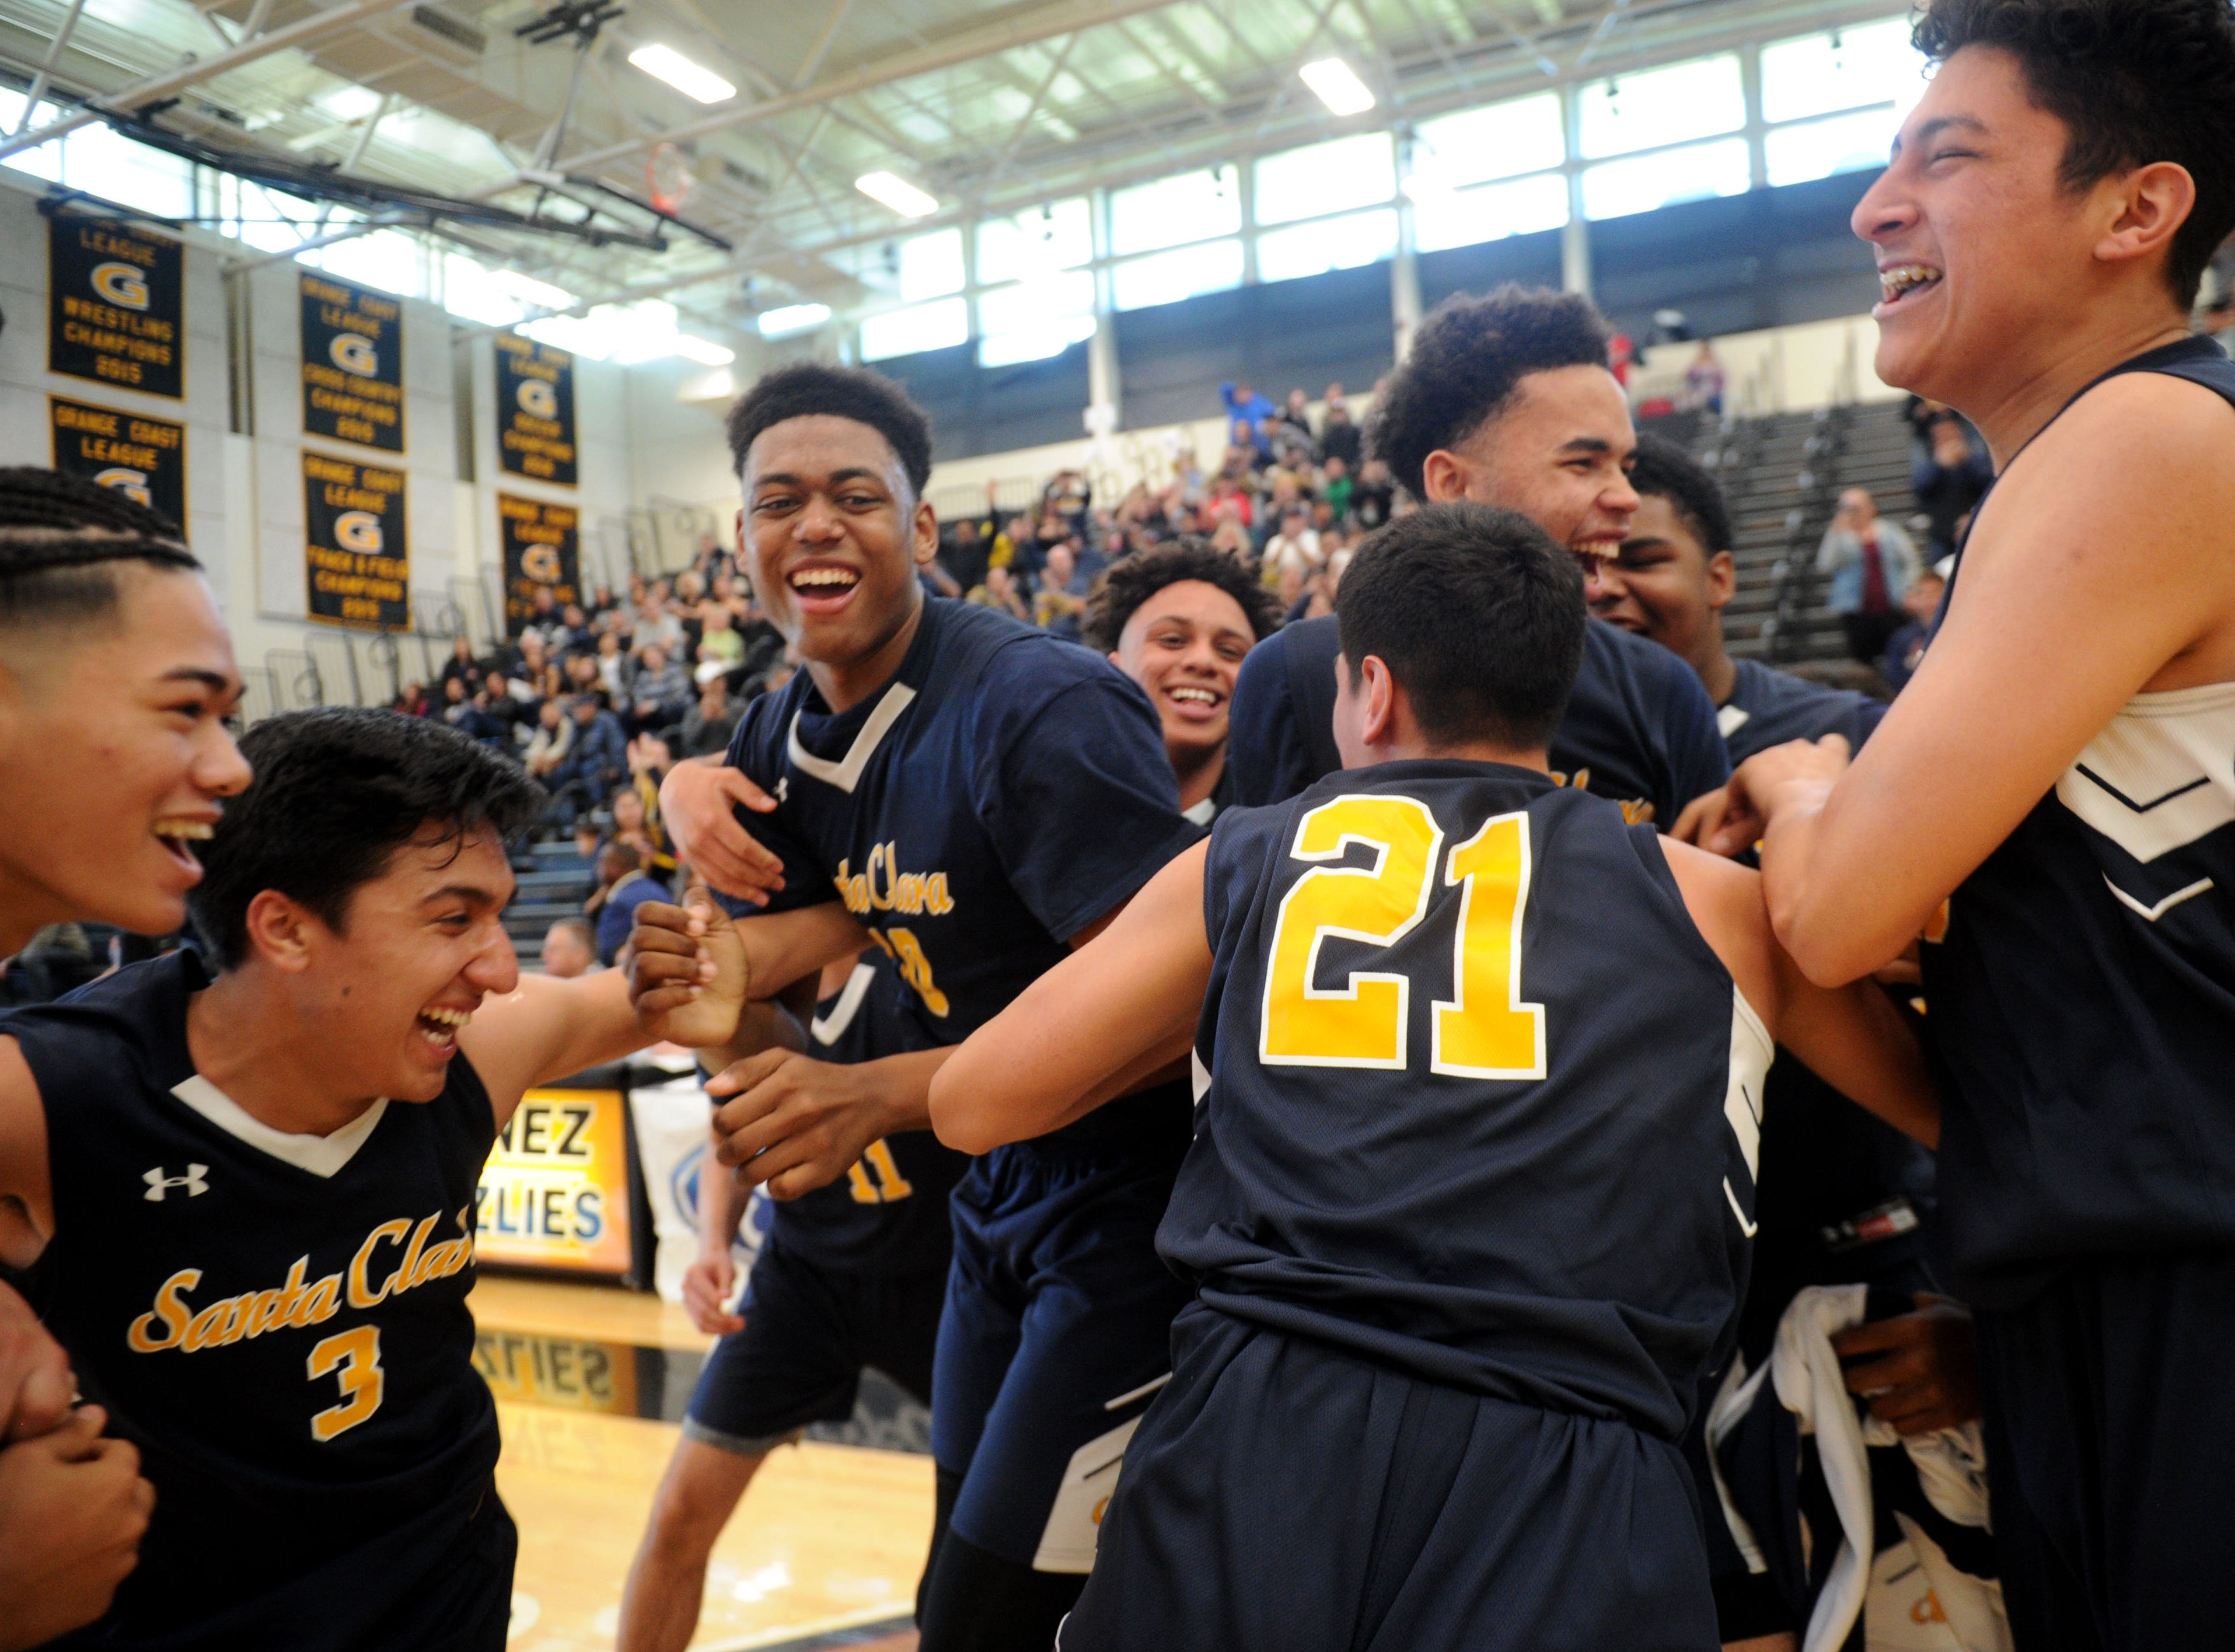 Santa Clara High players celebrate after defeating Sage Hill 68-52 in the CIF-Southern Section Division 5AA boys basketball championship game Saturday at Godinez High in Santa Ana.